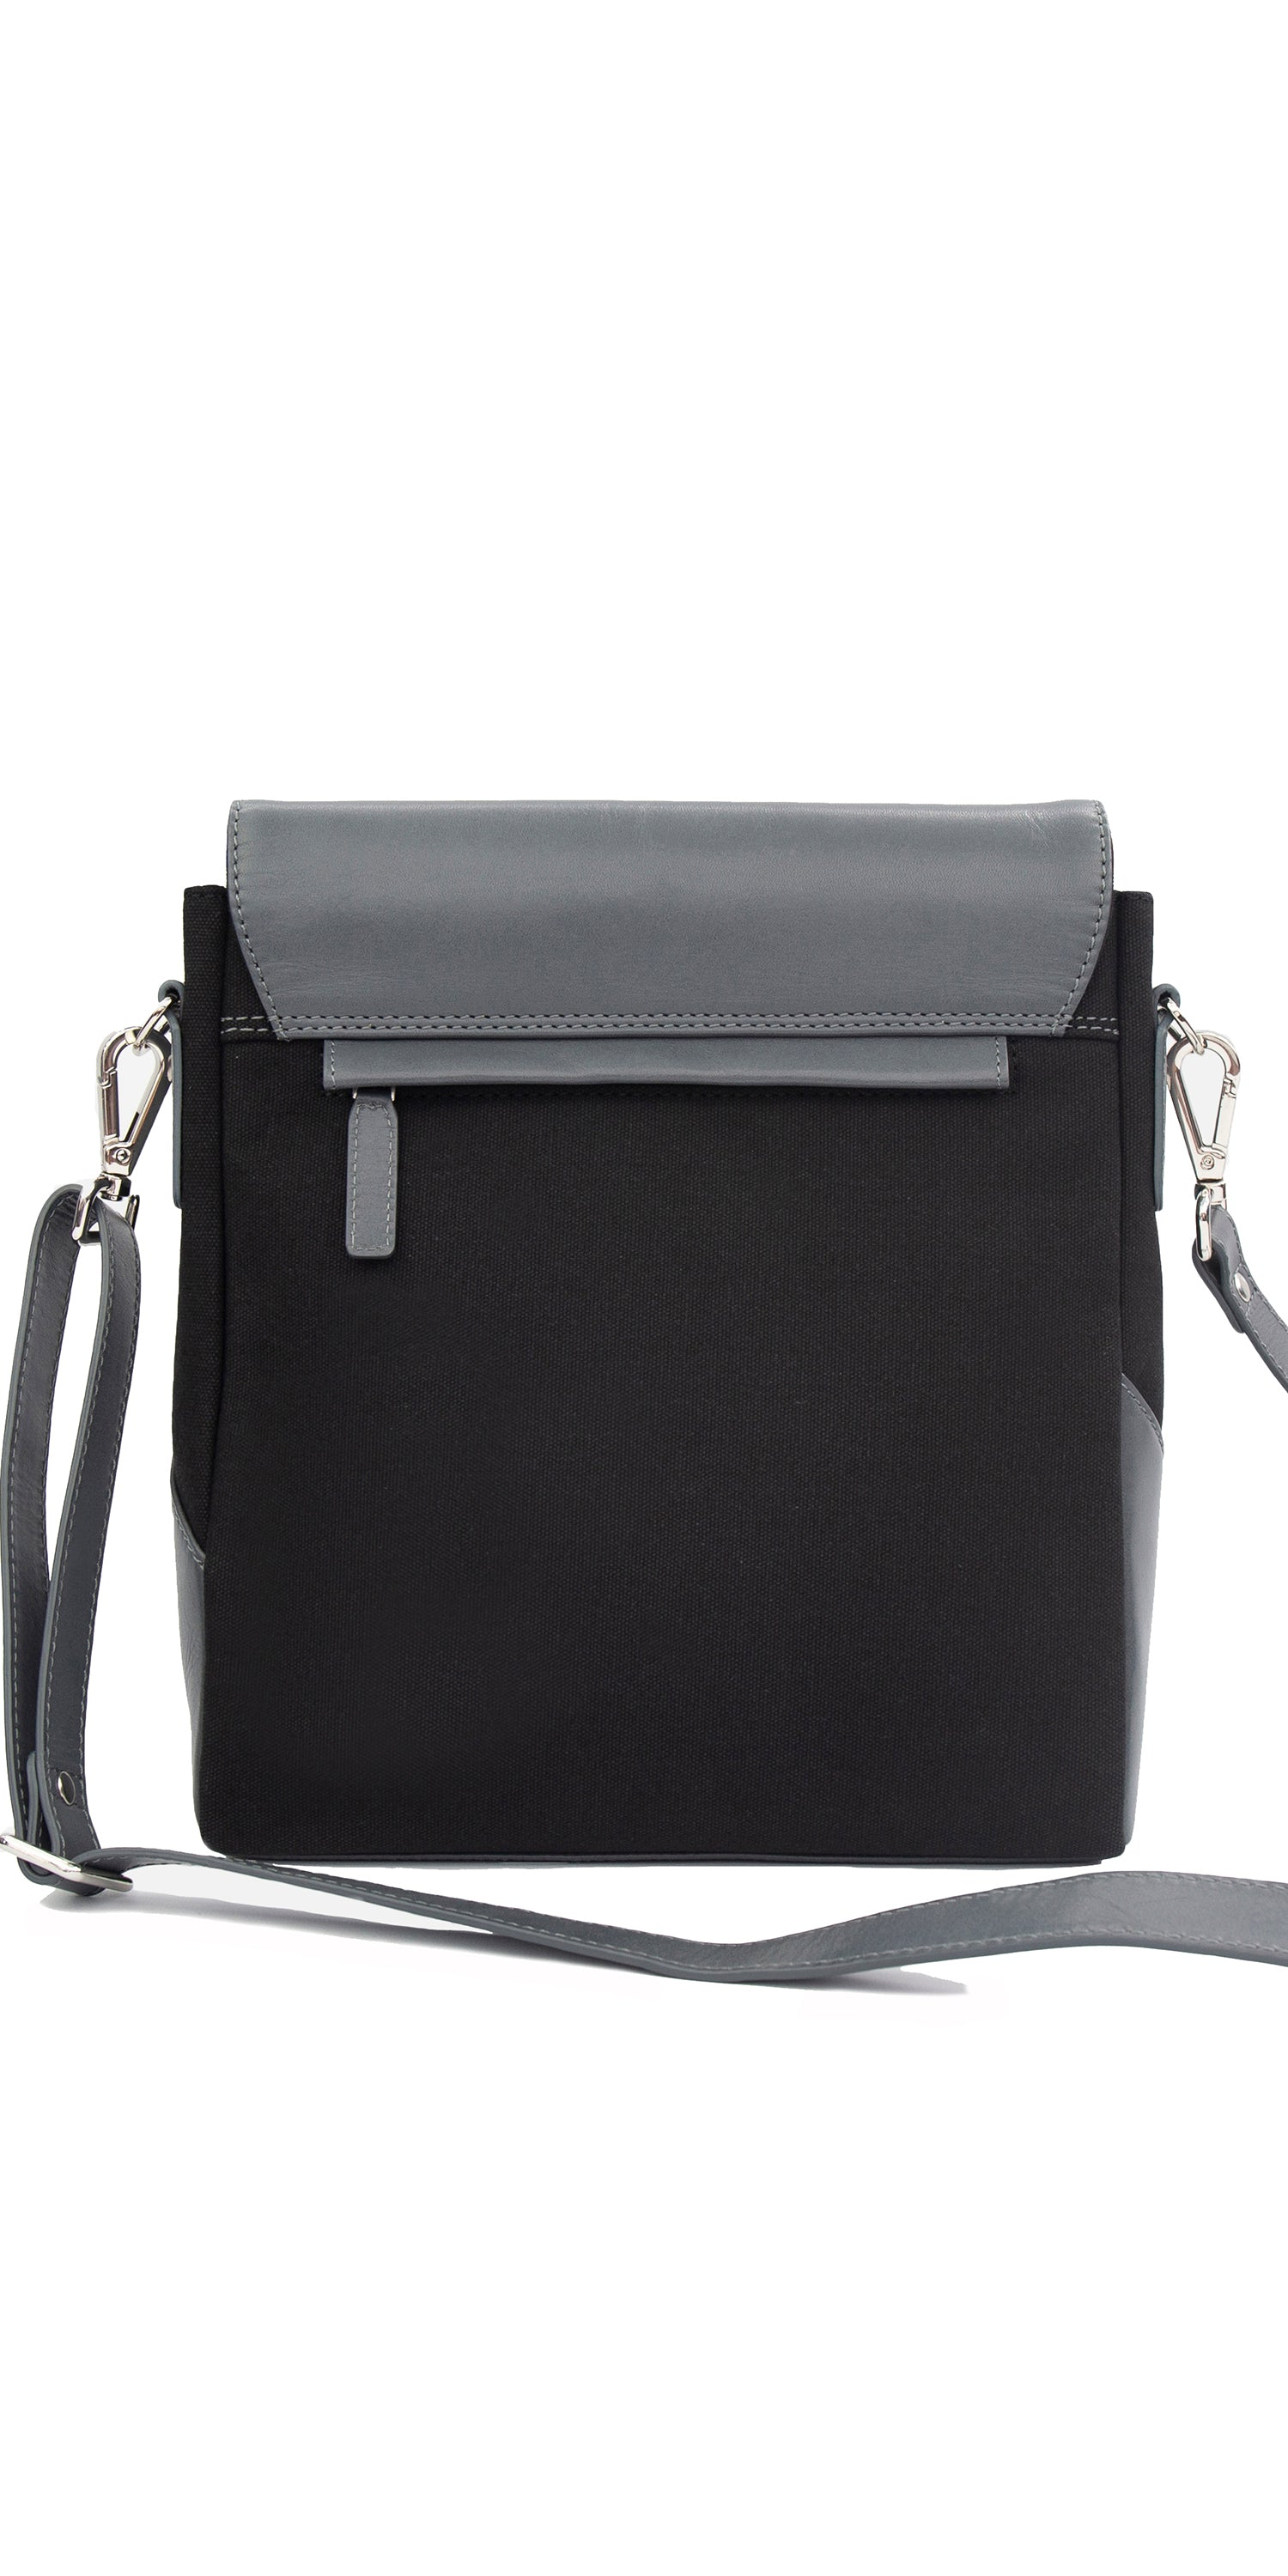 Moraltive Shoulder Bag Black & Grey